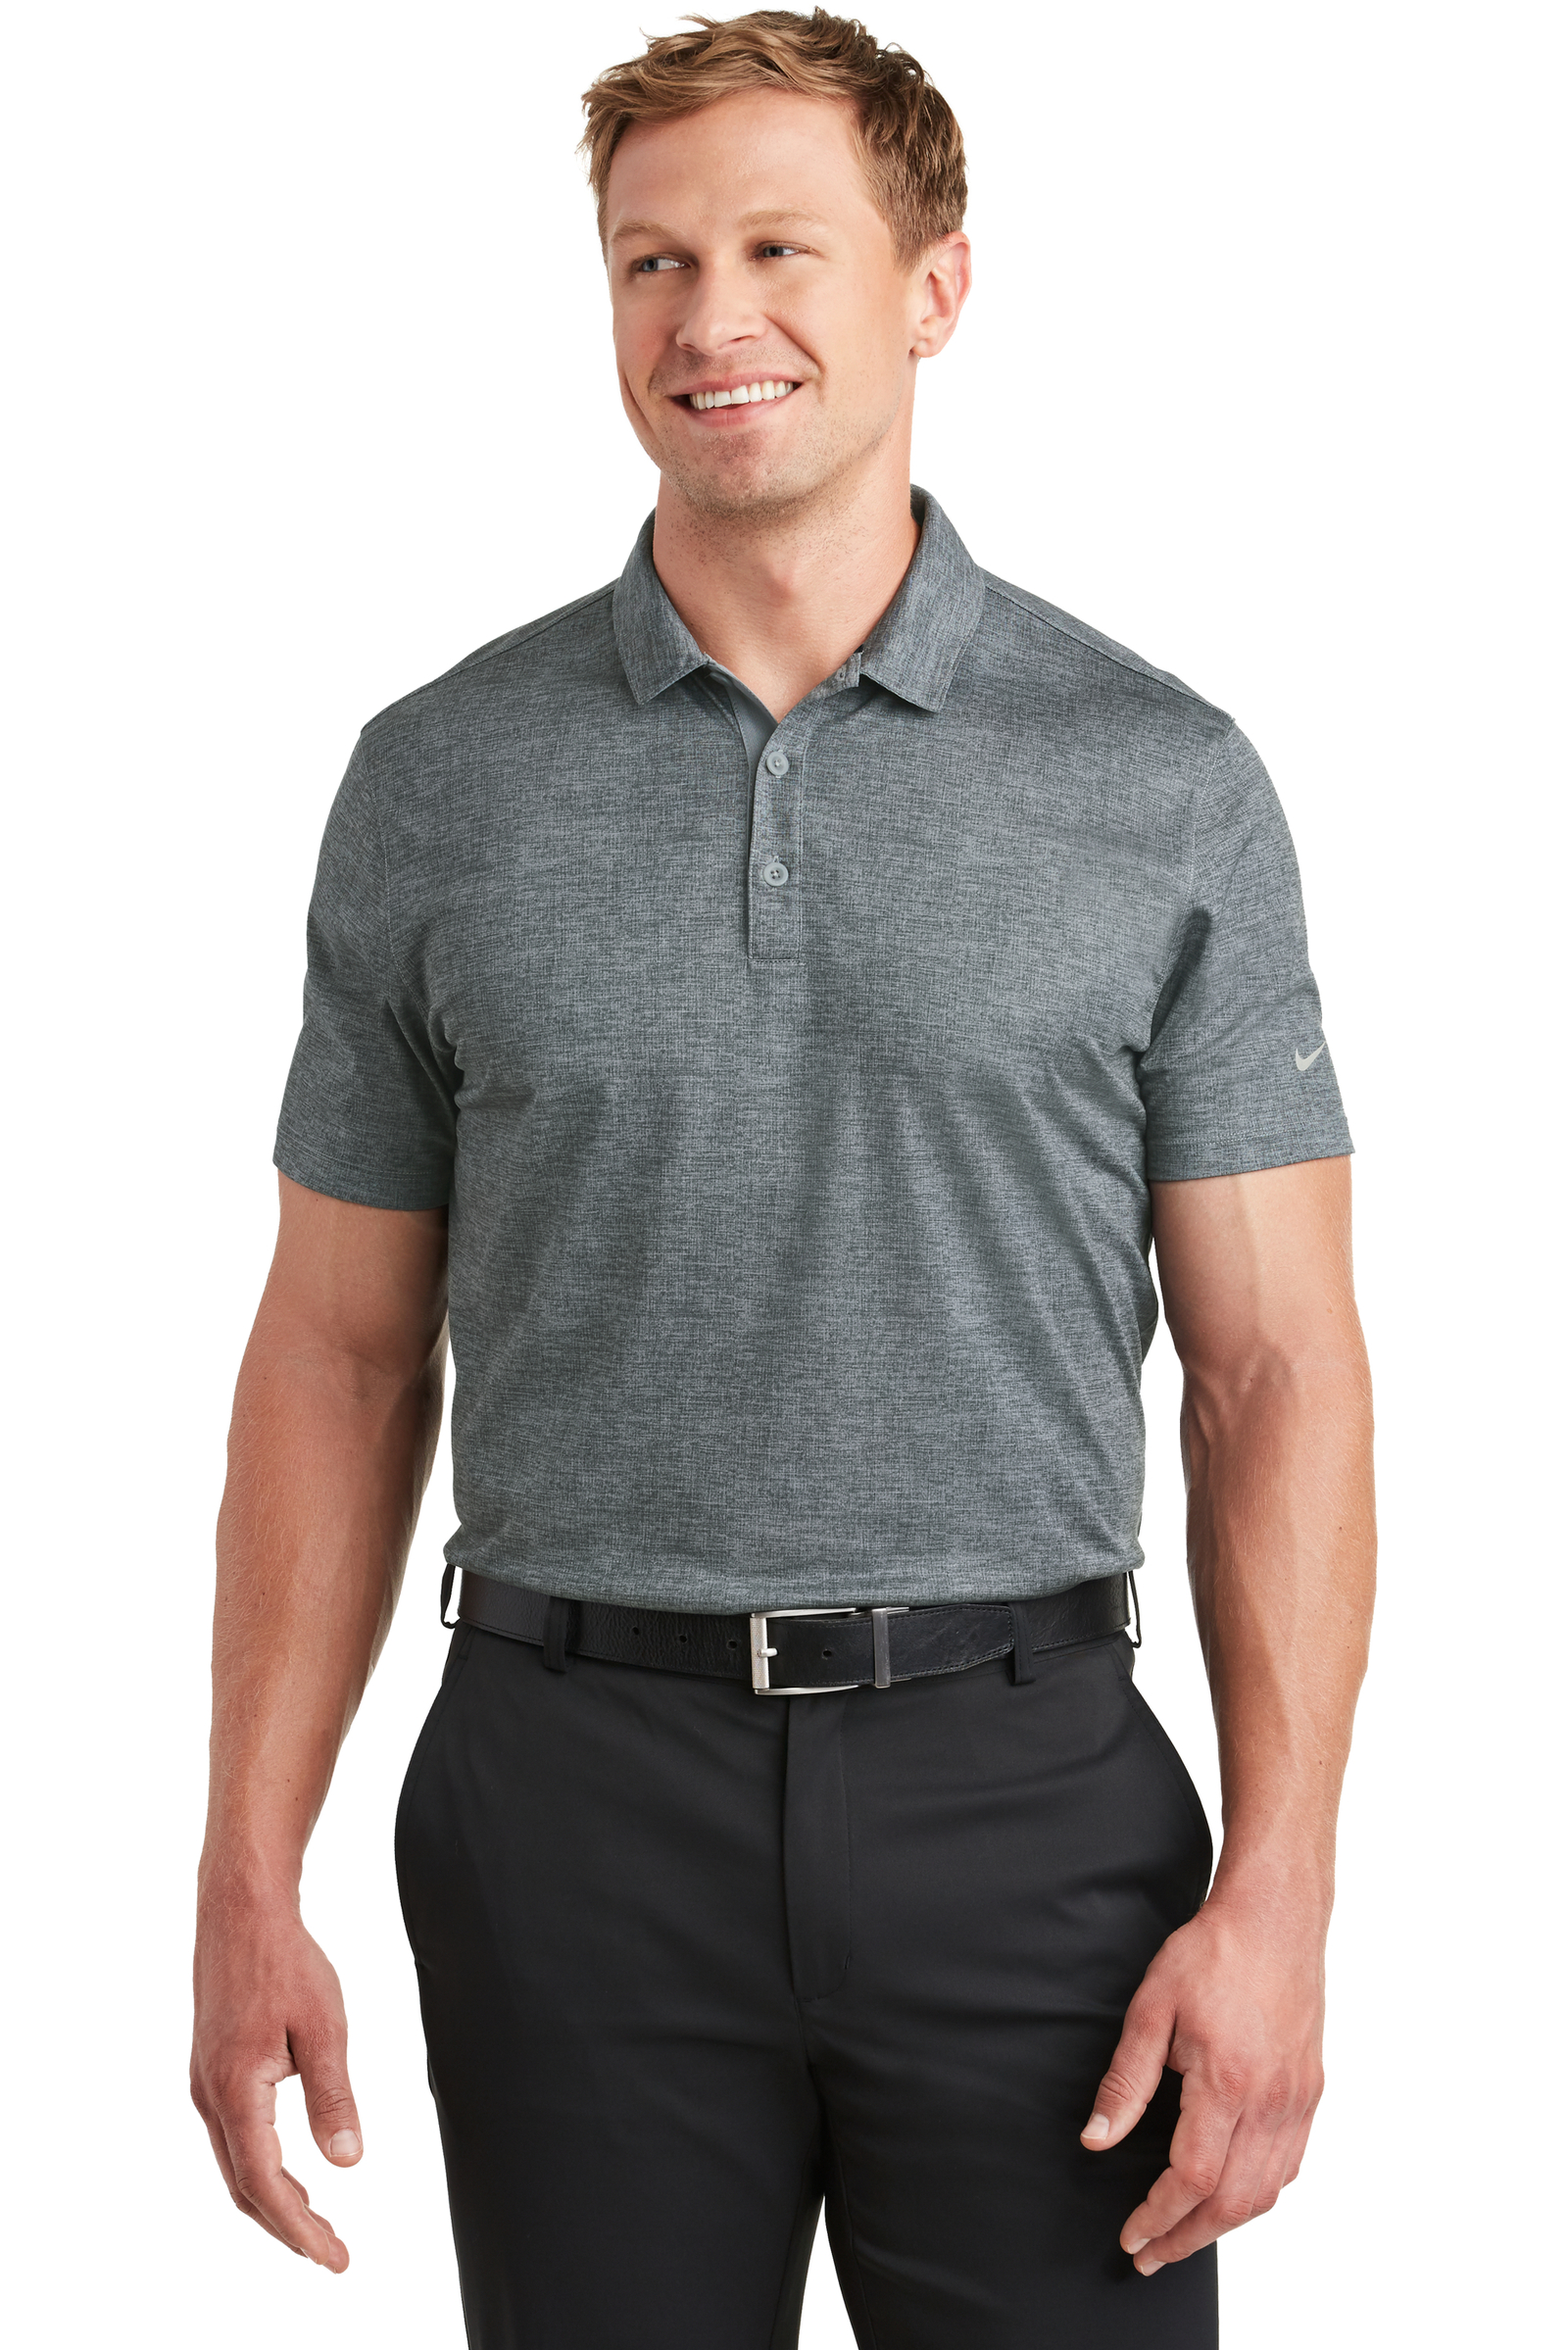 Nike Embroidered Men's Dri-FIT Crosshatch Polo